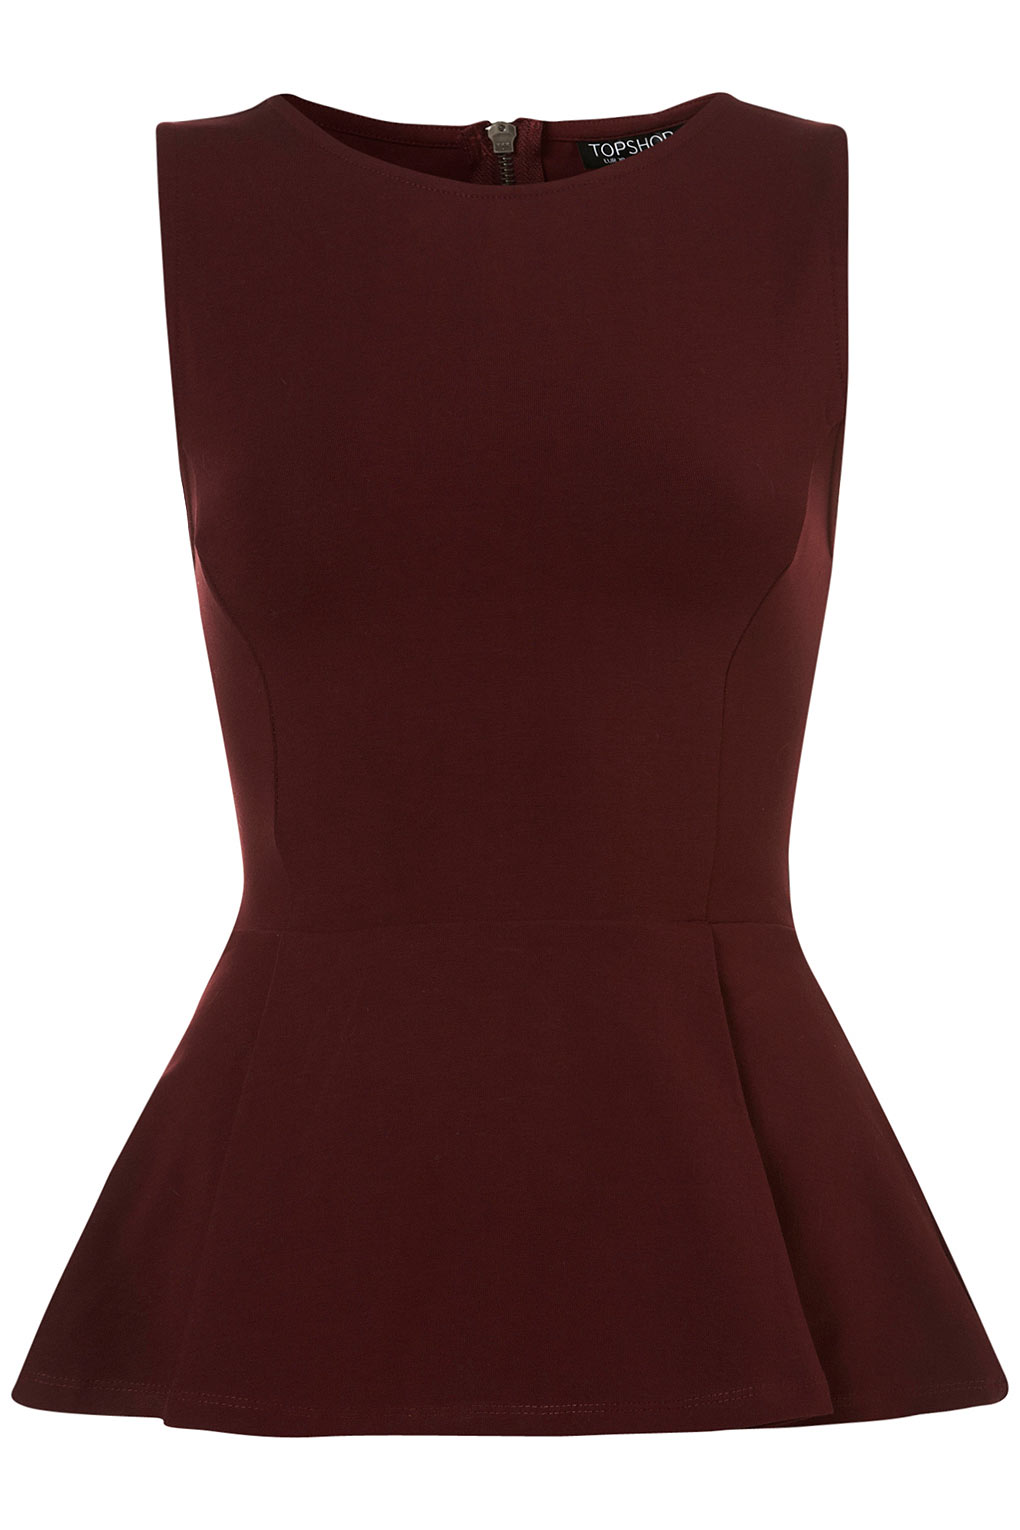 The Lulus Kimball Burgundy Sleeveless Peplum Top will take you from an average workday to a fun day of play! Soft, stretch knit shapes a V-neckline and sleeveless 4/5(3).